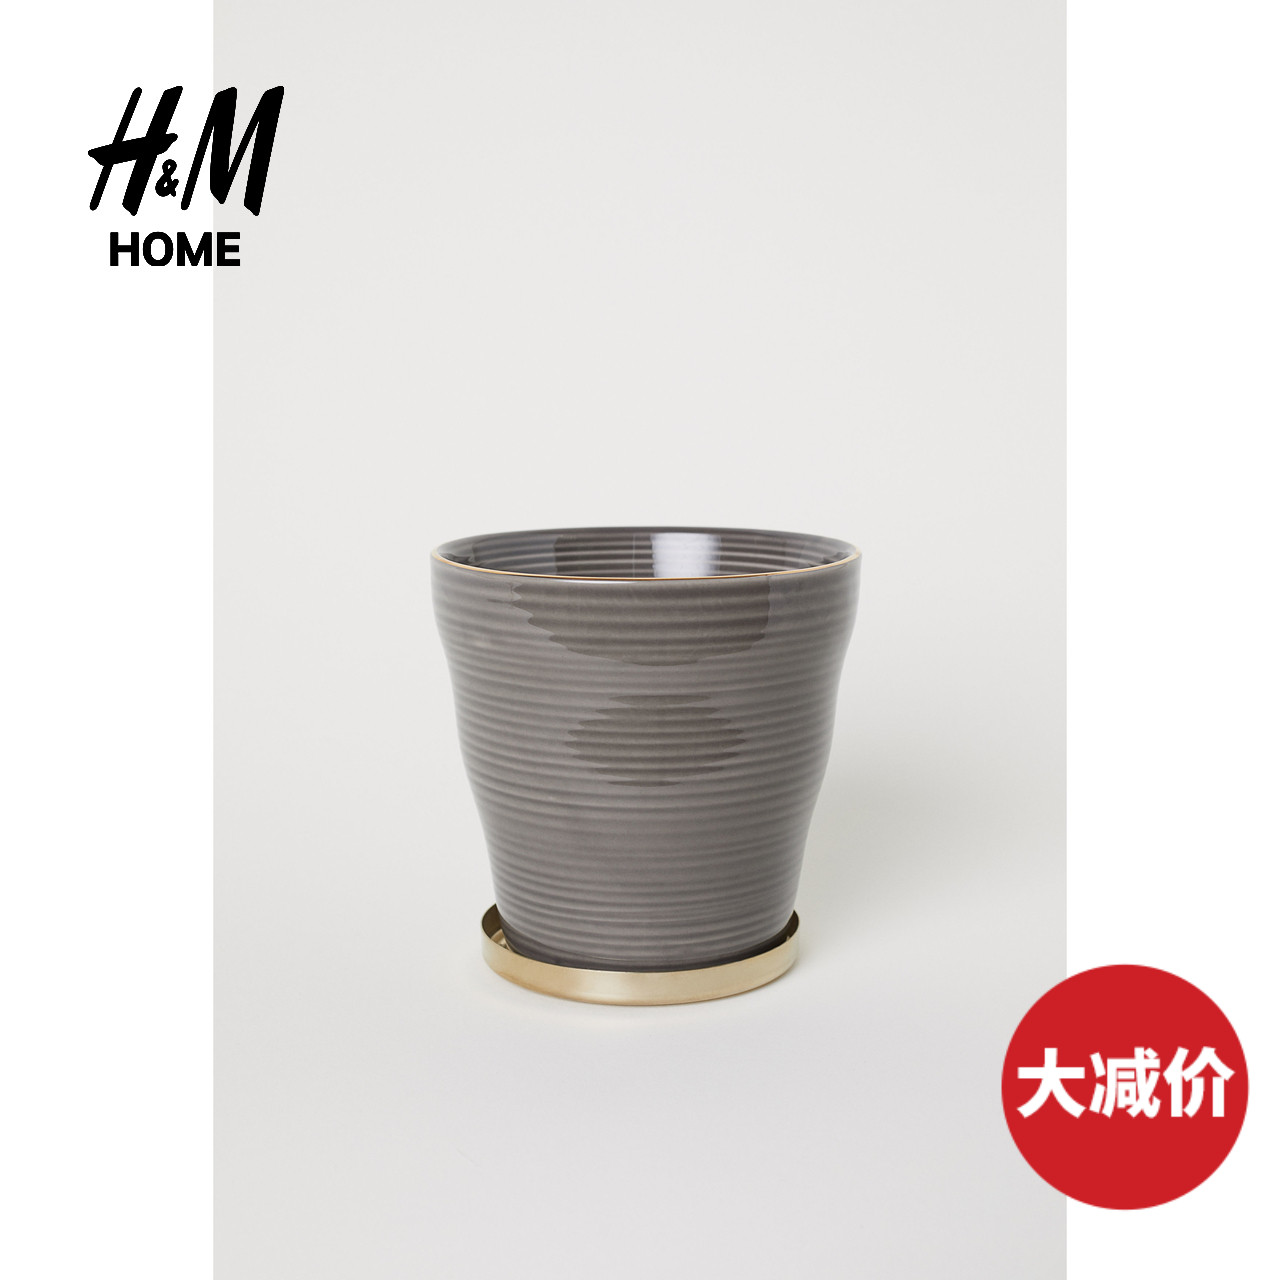 H&M Household Appliances Simple Style Vase Ceramics with Metal Cushion Plate Grooved Flower Pot HM0644221